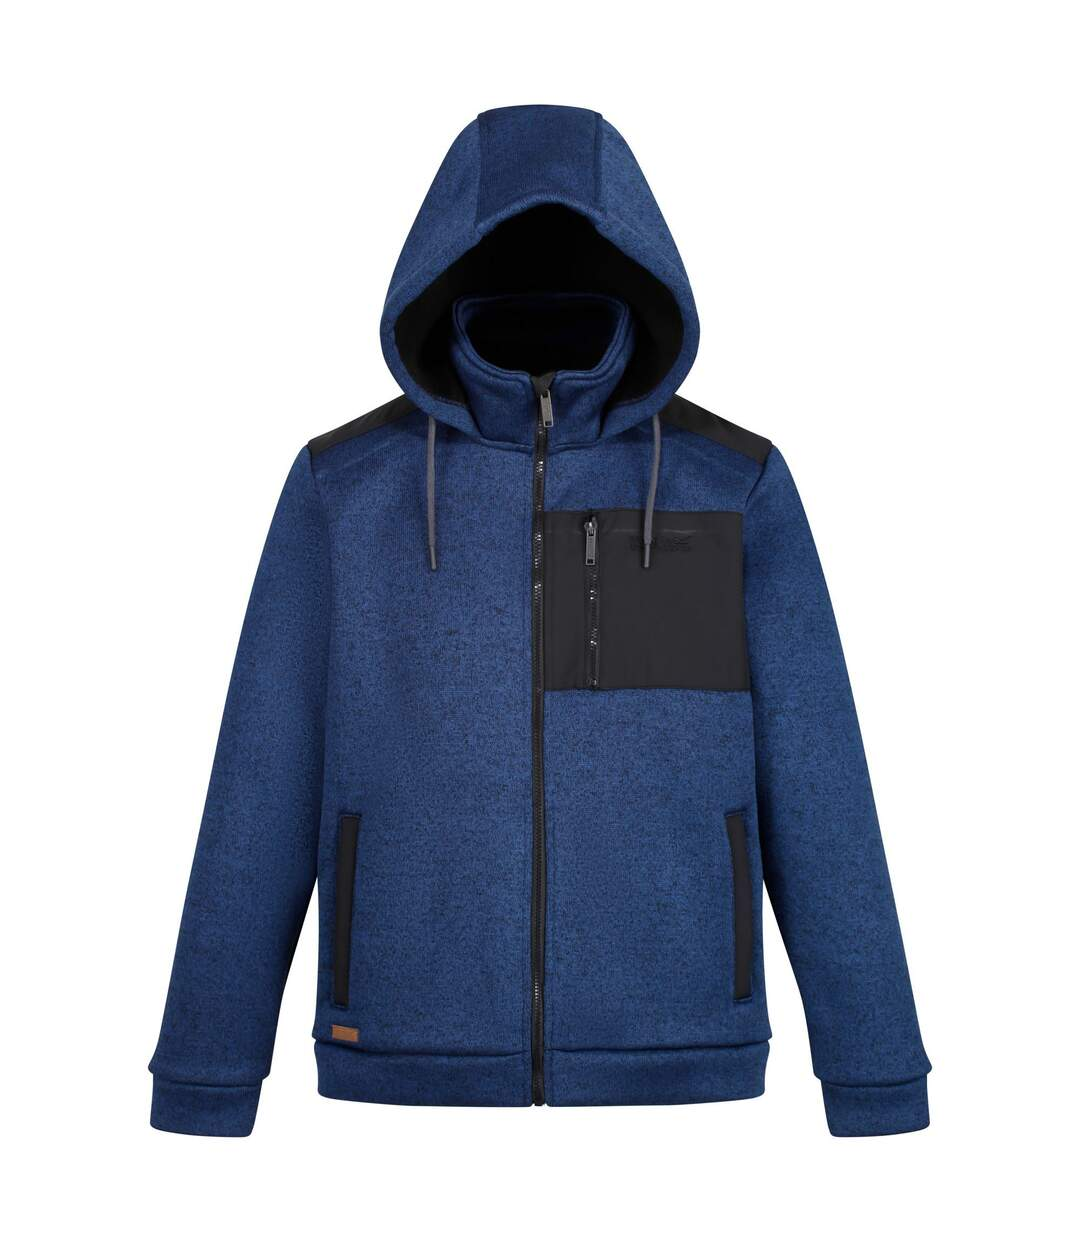 Regatta Mens Westbrook Heavyweight Full Zip Hooded Fleece (Navy/Black) - UTRG4773